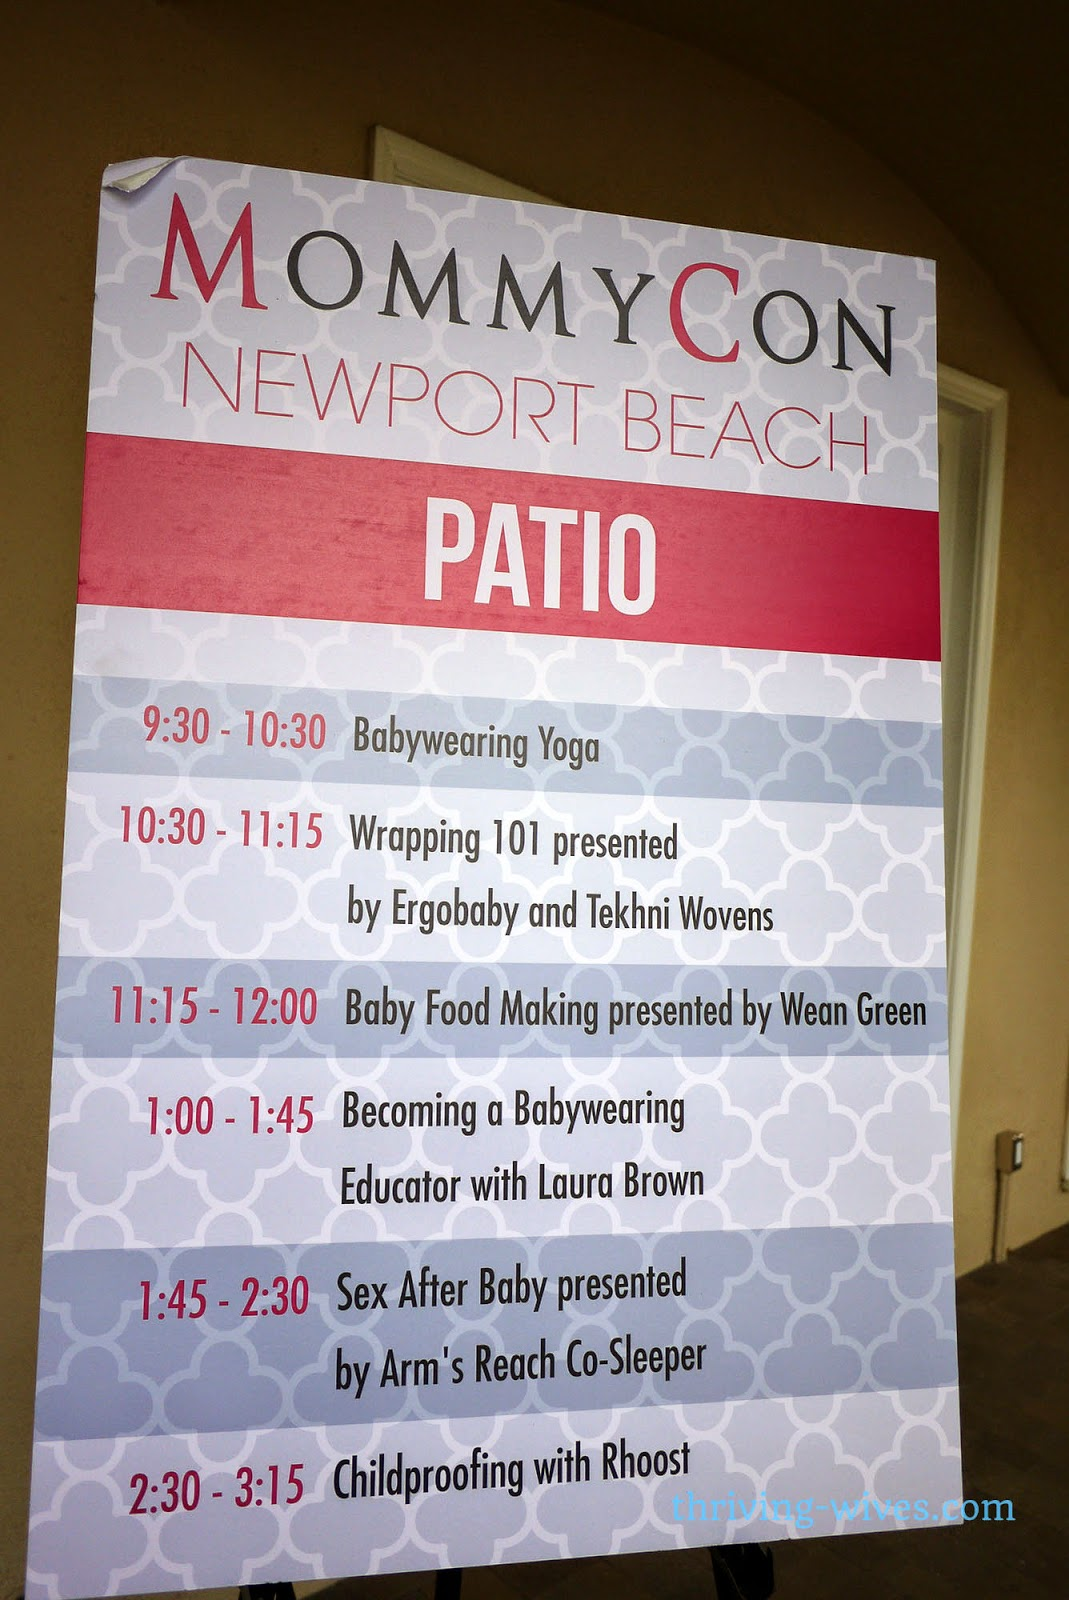 MommyCon Newport Beach 2014 and Kiinde giveaway